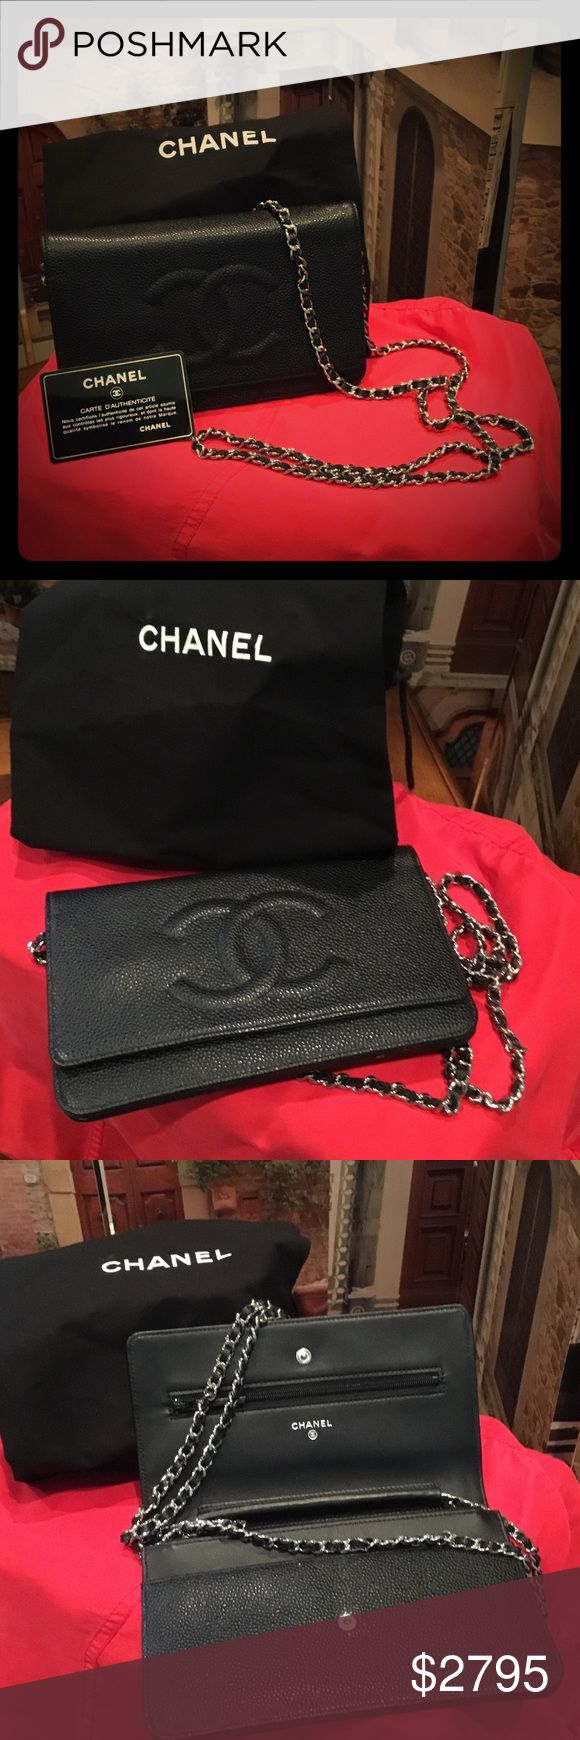 """Chanel Caviar Leather Clutch As seen on Lady Gaga and Jen Garner, exquisite Black Caviar Crossbody, used ONCE. Dust cover and authenticity control number card. Strap approx 24"""". No wear , nearly new! CHANEL Bags Clutches & Wristlets"""